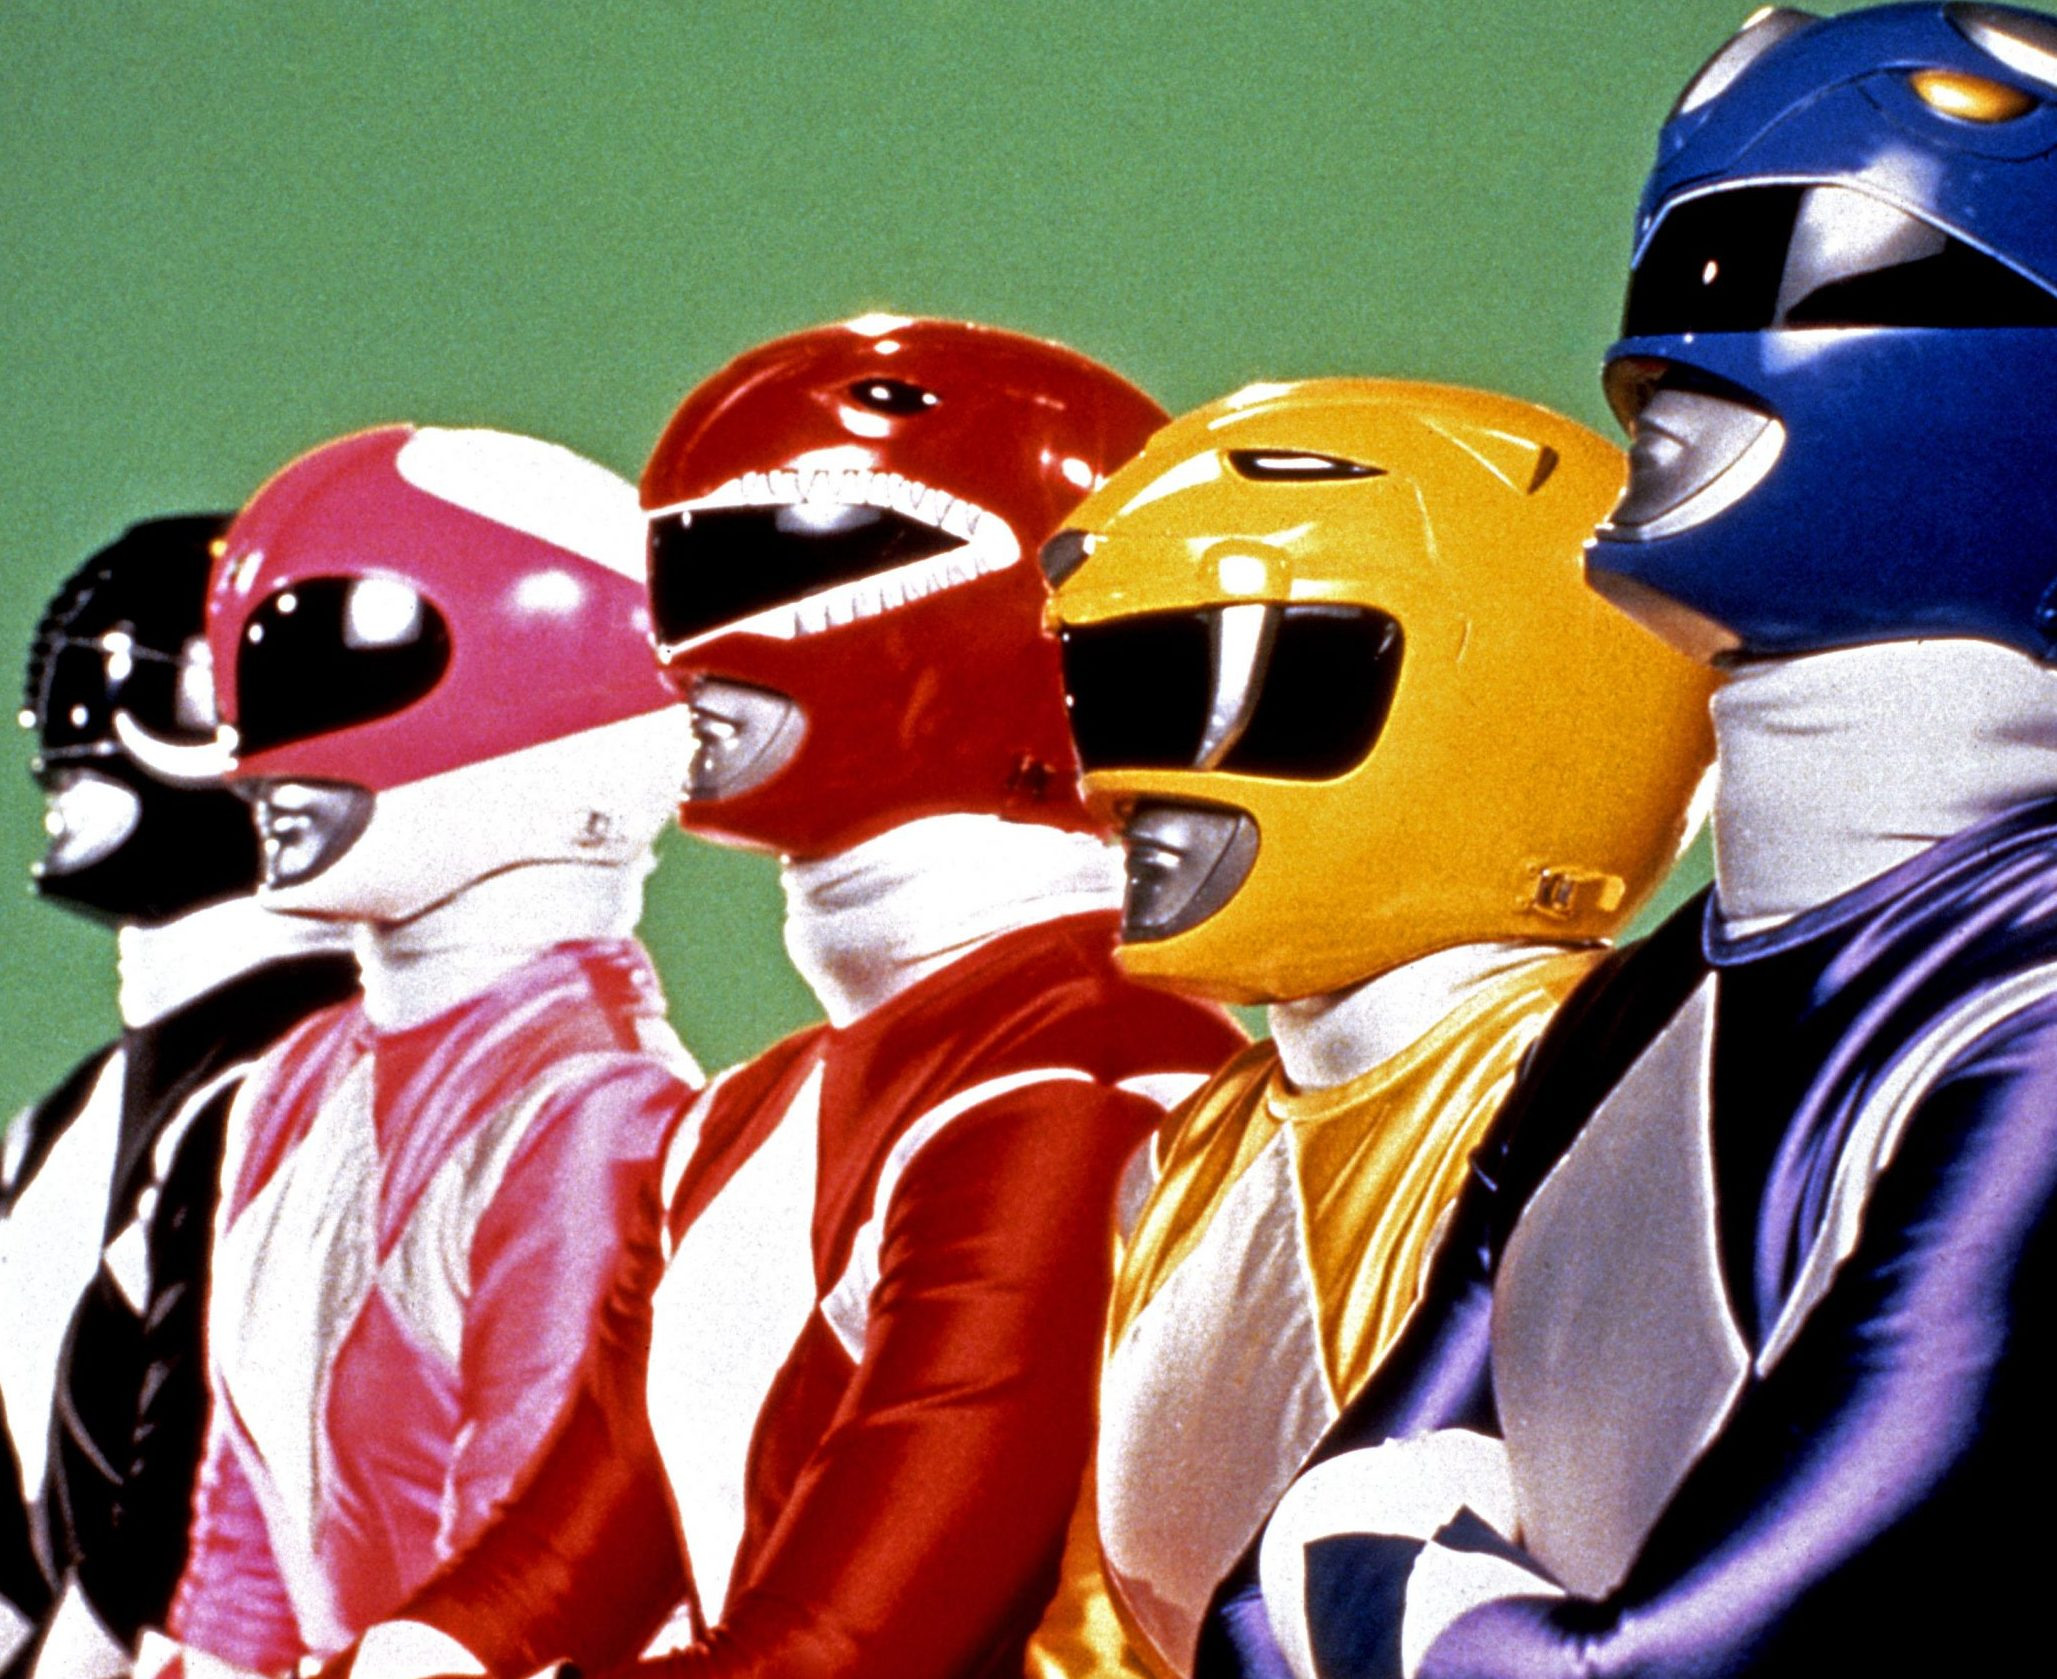 HDB4F0 scaled 1 e1606314354220 20 High-Kicking Facts About Mighty Morphin Power Rangers